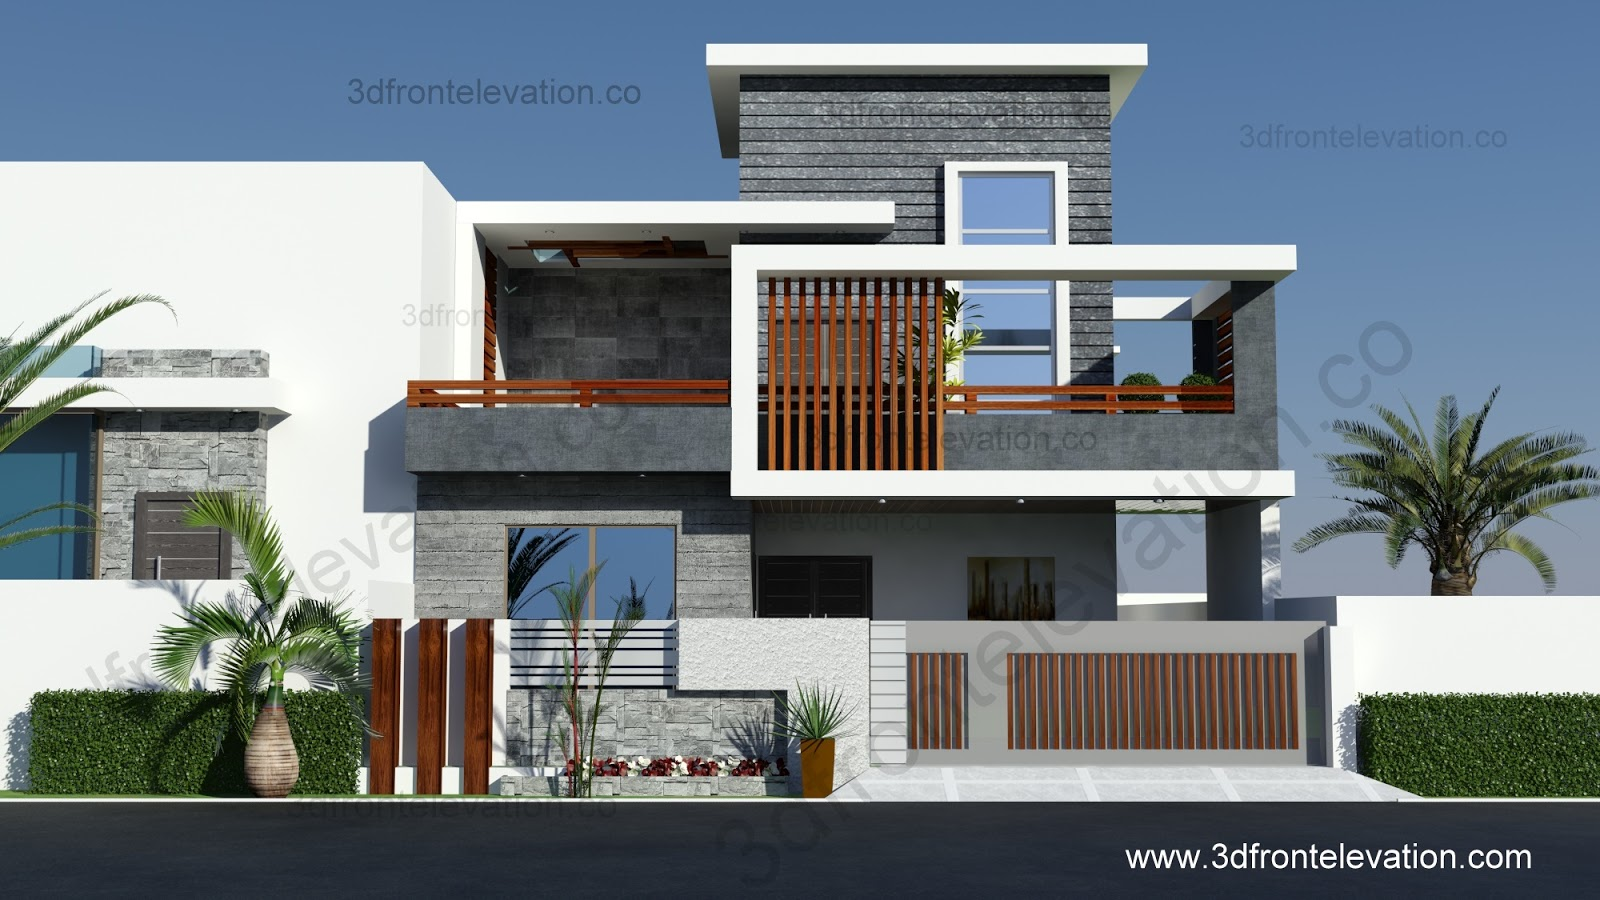 D Front Elevation Of Marla Houses : Front elevation of marla houses photos joy studio